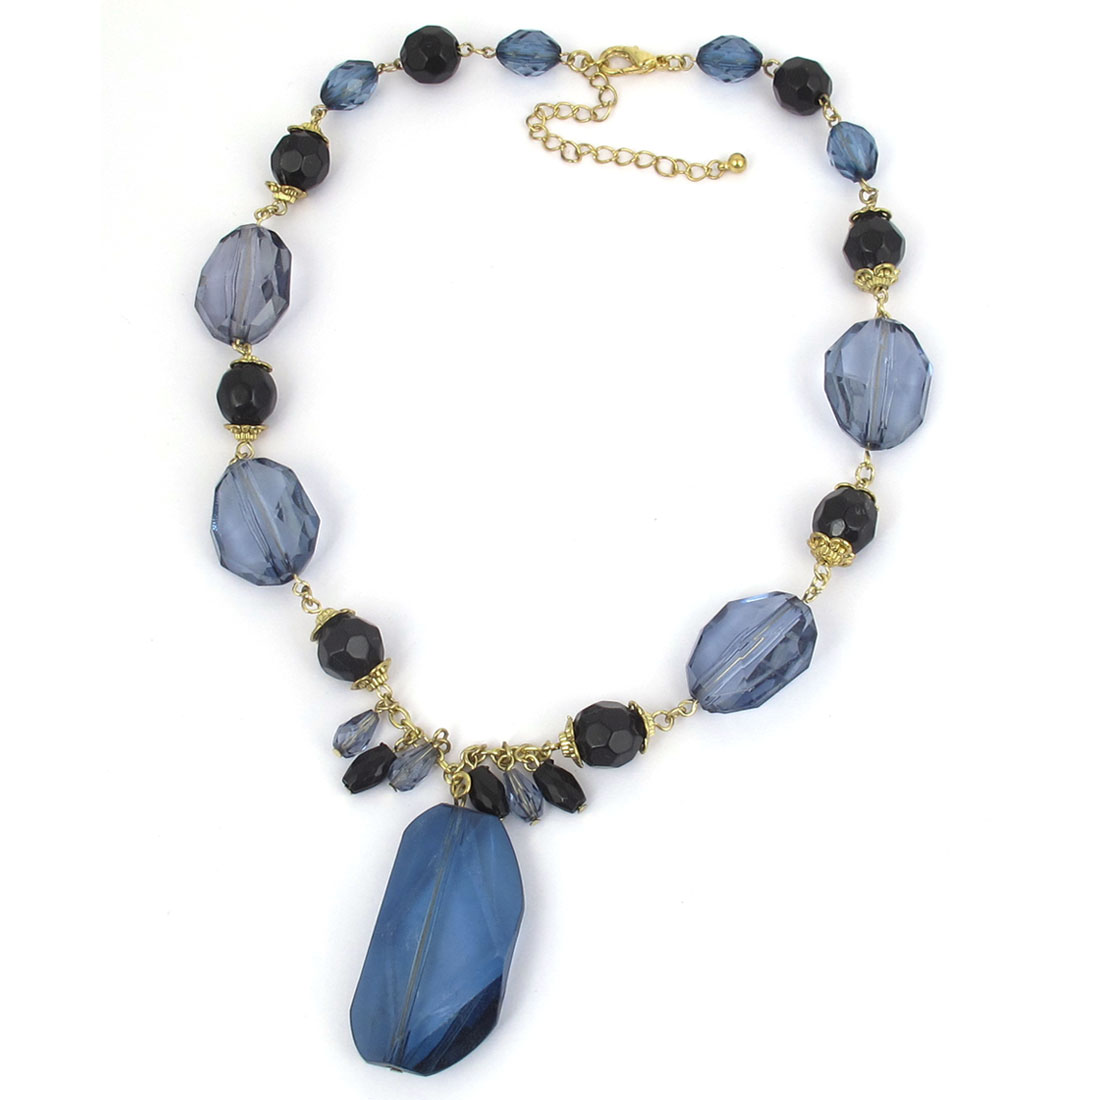 Ladies Black Dusty Blue Plastic Beads Detail Crystals Pendant Metal Lobster Buckle Strip Link Necklace Neckwear Collar Gold Tone